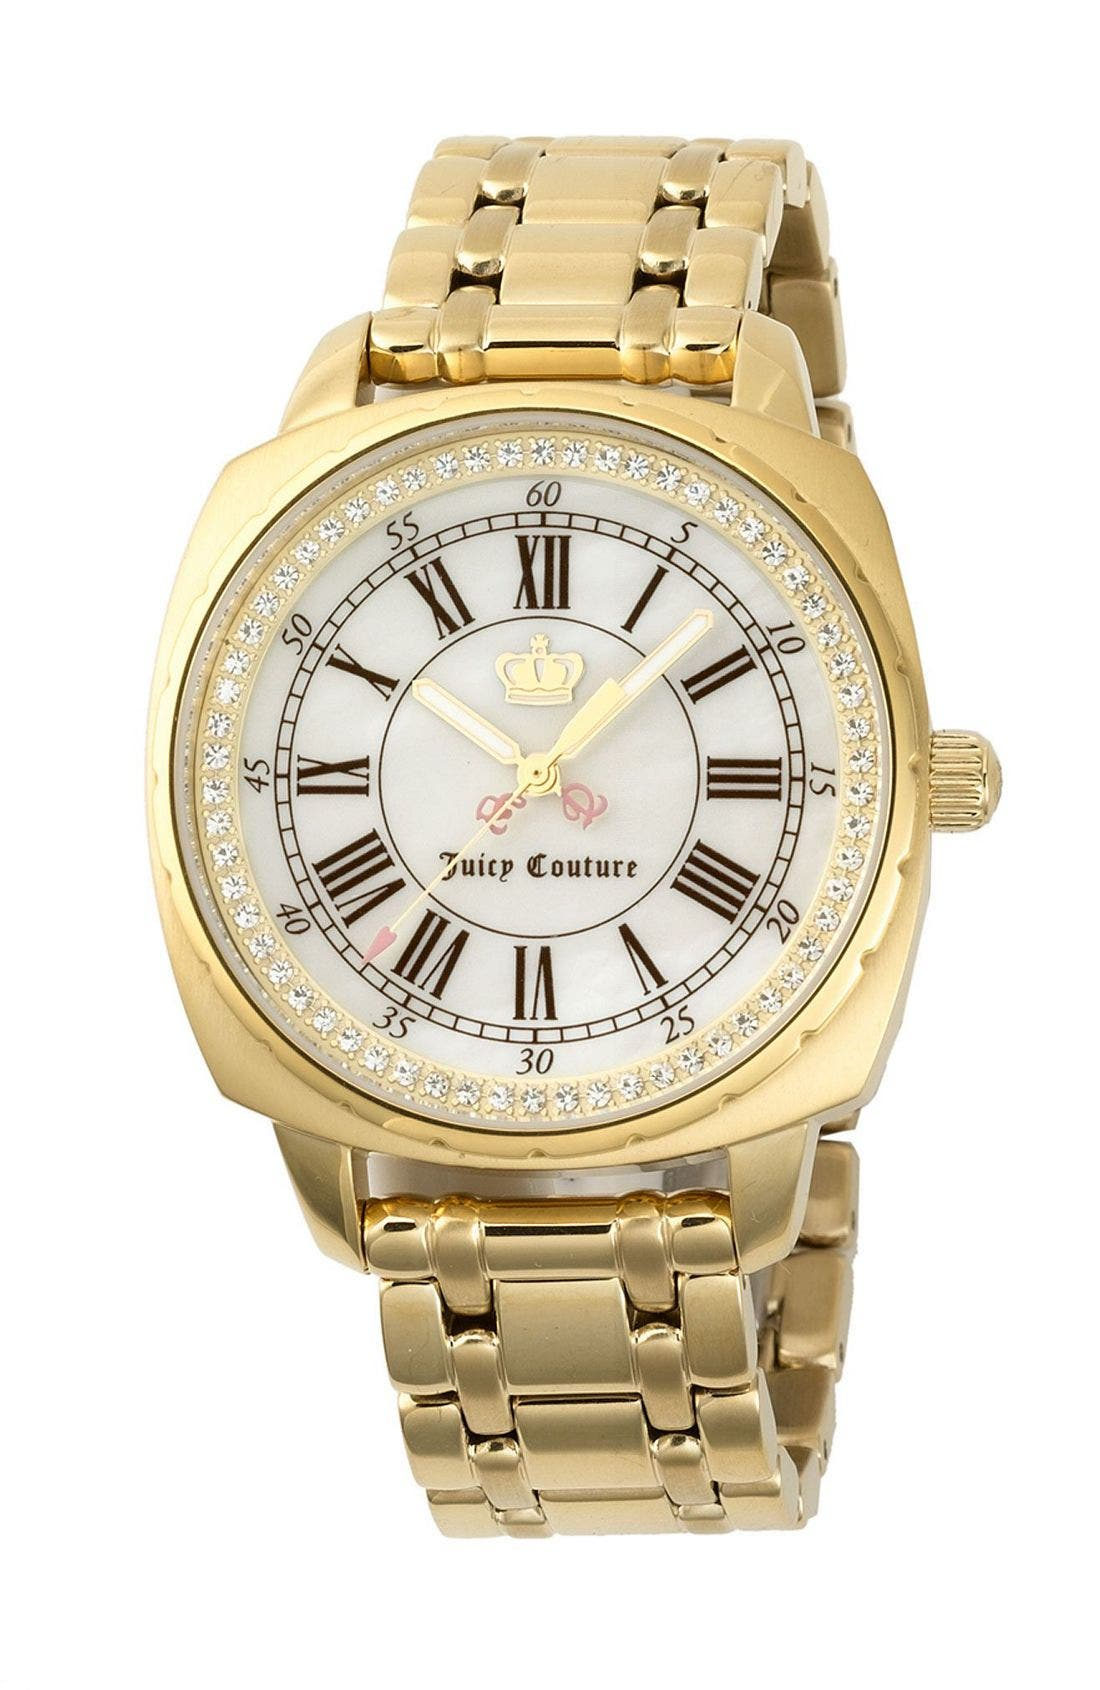 Main Image - Juicy Couture 'The Beau' Boyfriend Watch